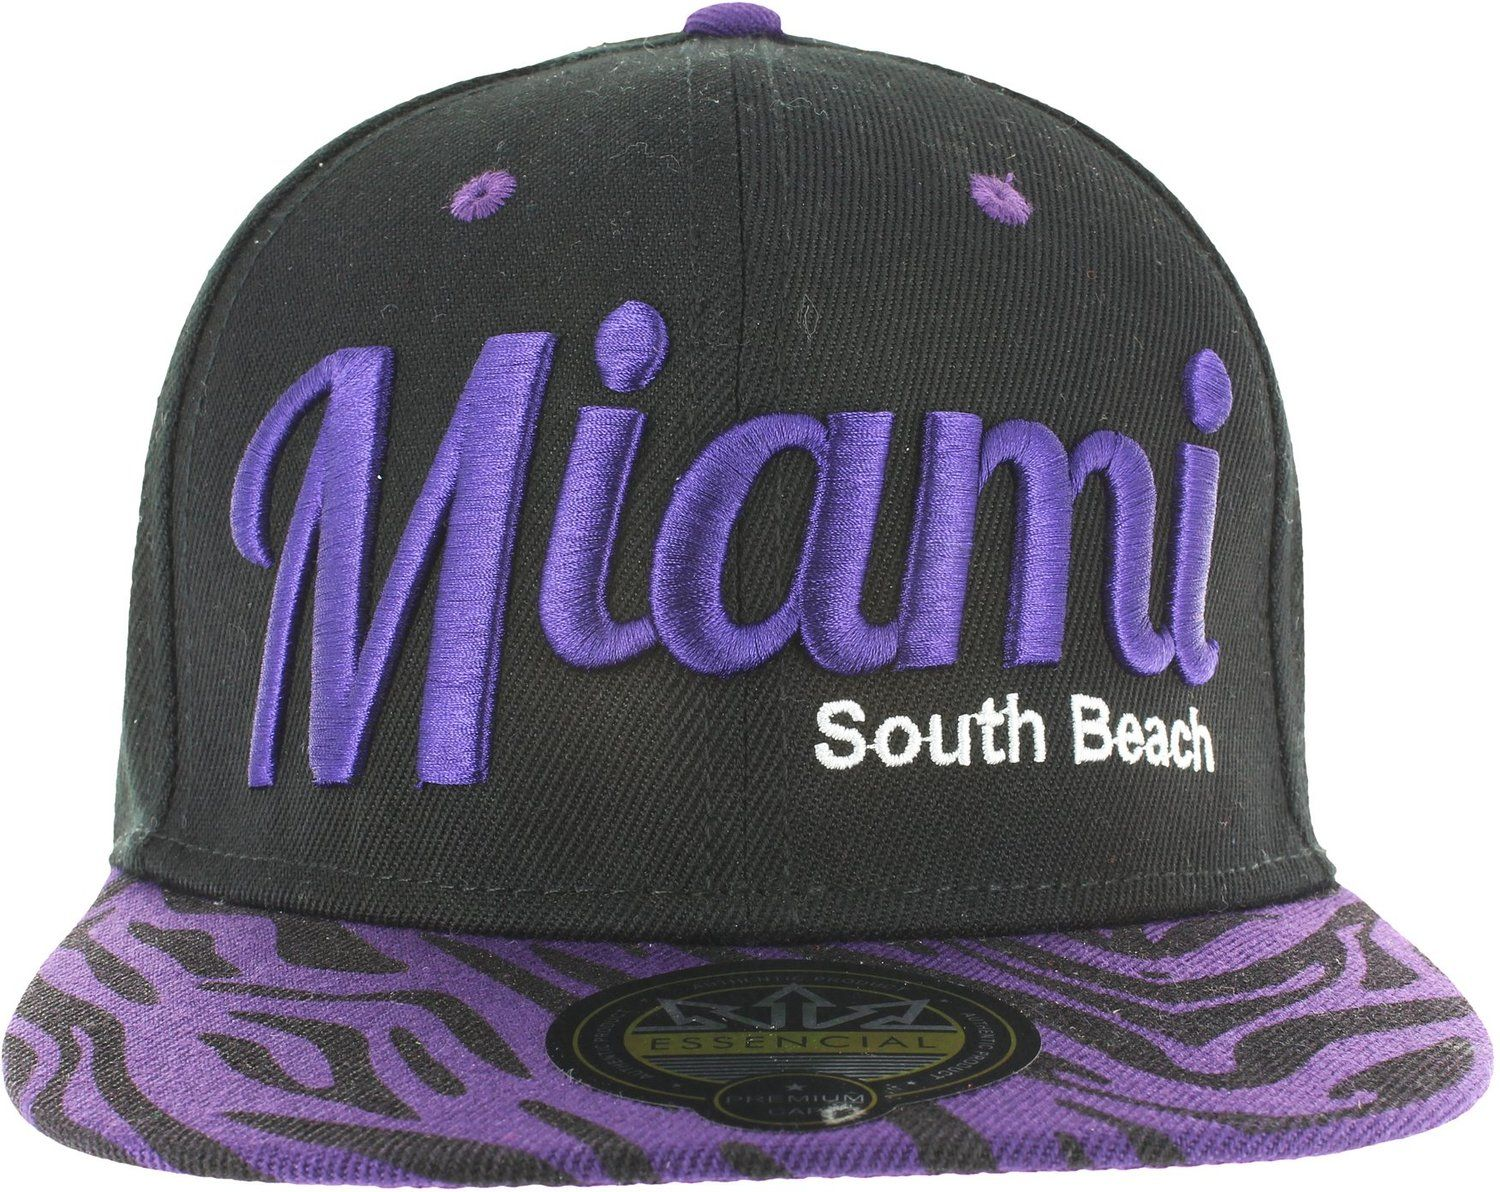 MIAMI ANIMAL PRINT ZEBRA SNAPBACK BASEBALL CAP - BLACK AND PURPLE at Amazon… 84995a14a724